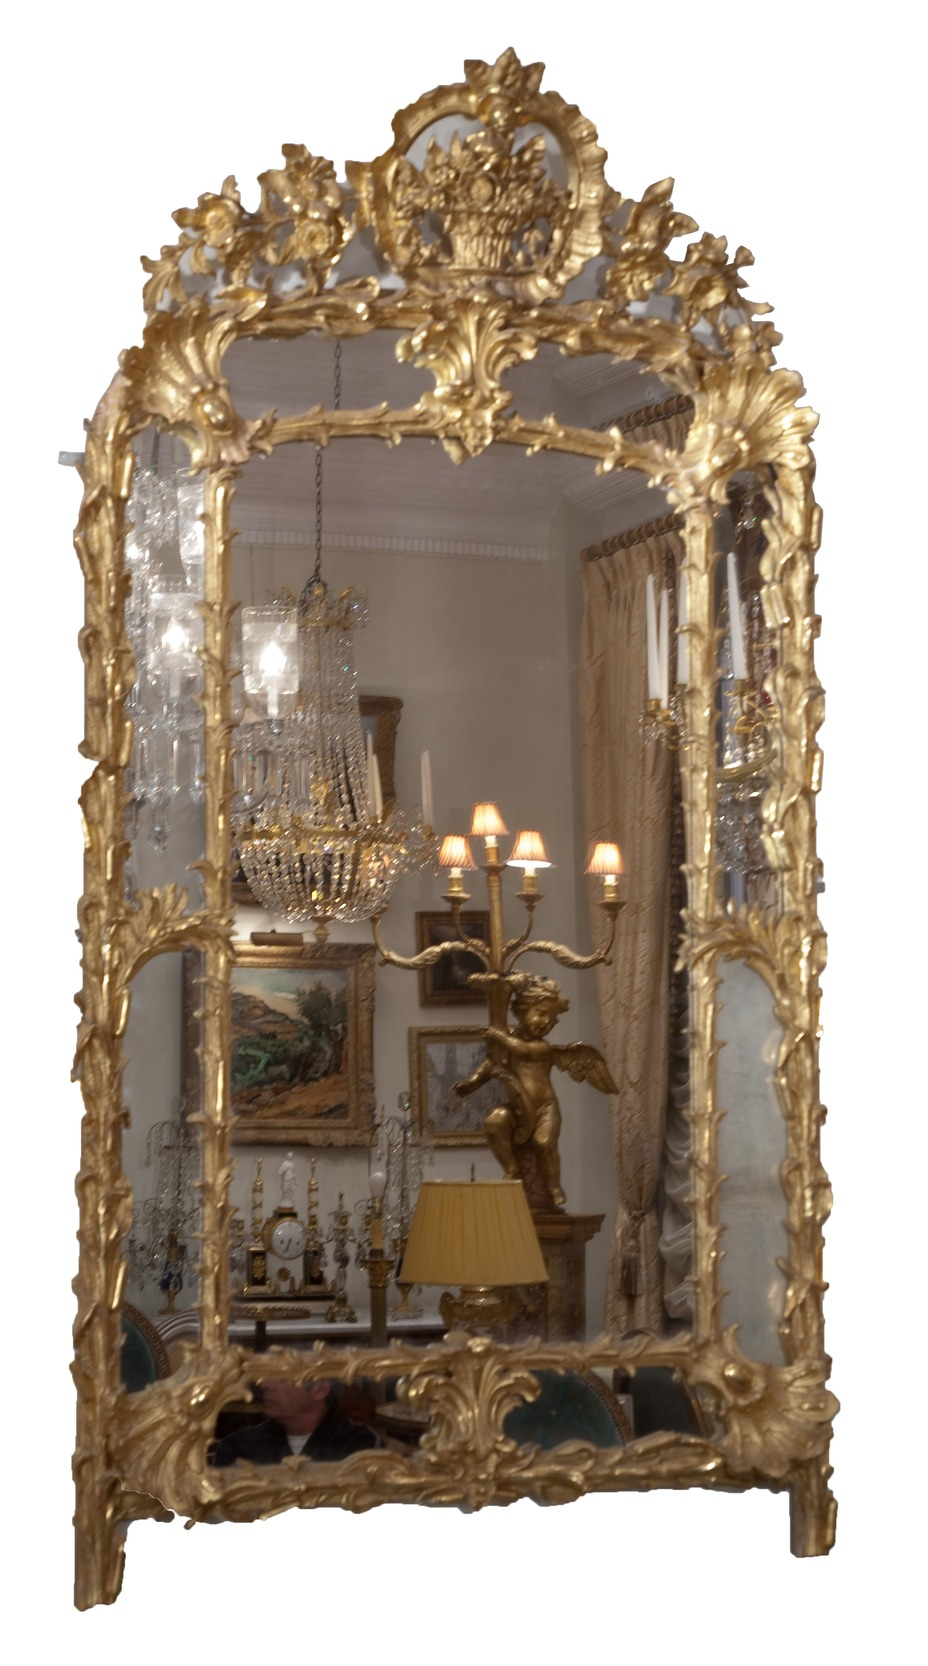 New York Antique Glass Mirror, New Jersey Antique Glass ...